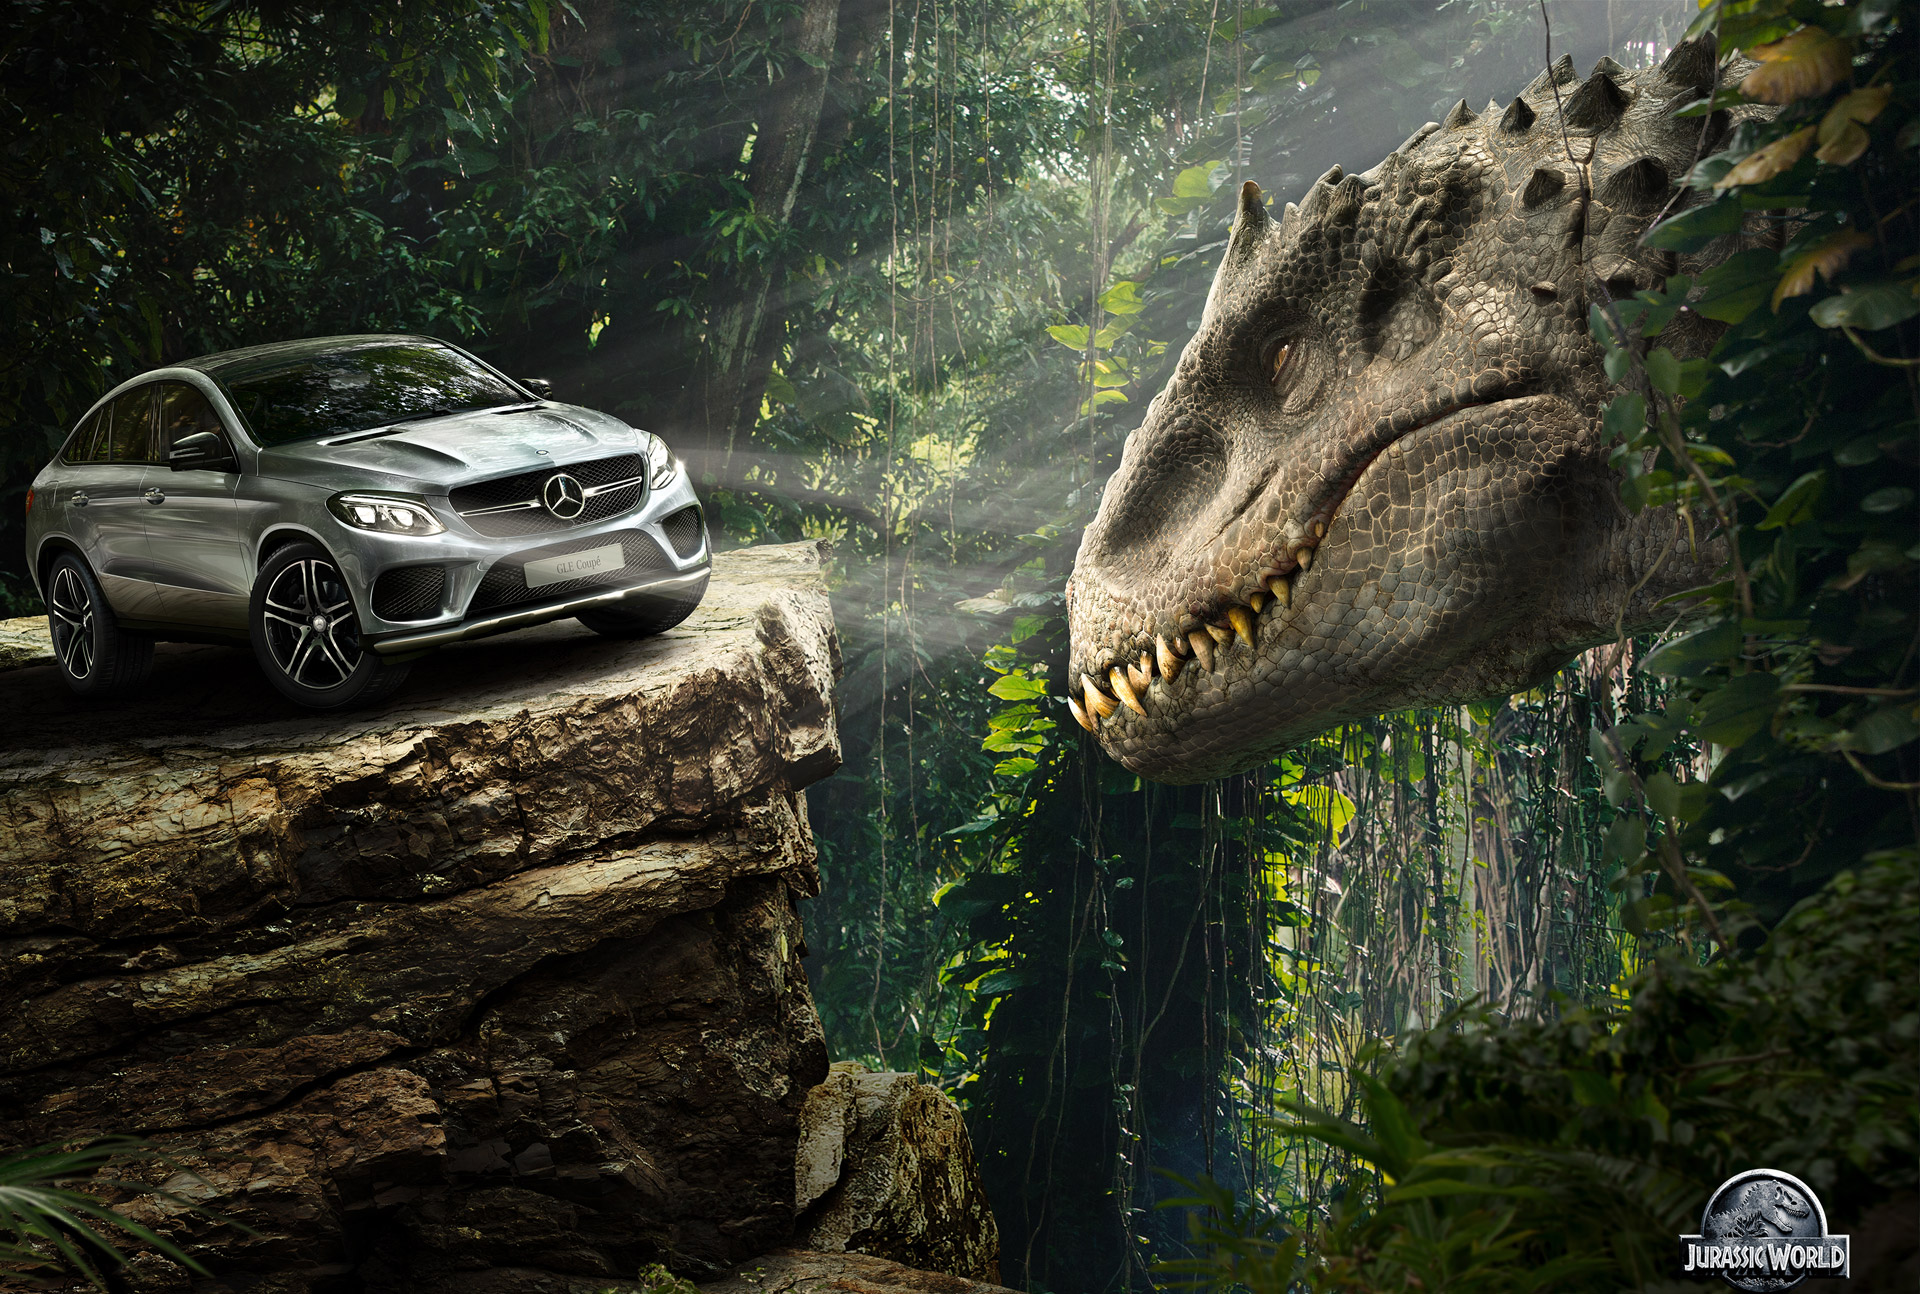 Jurassic World: Mercedes Fleet Including Unimogs And G63 6x6 Starring In